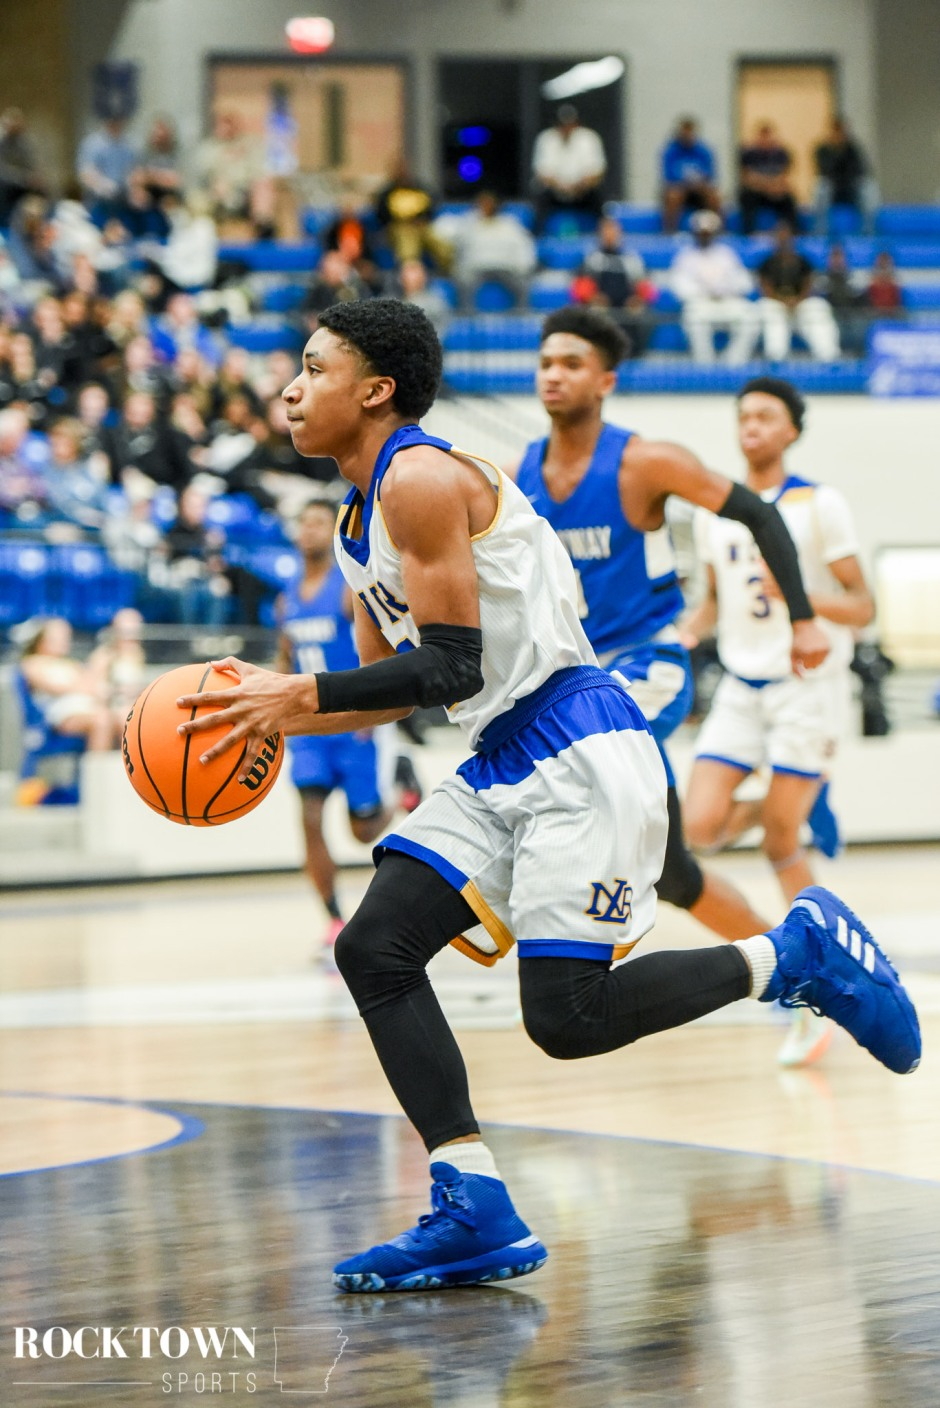 NLR_conway_bball_2020(i)-45